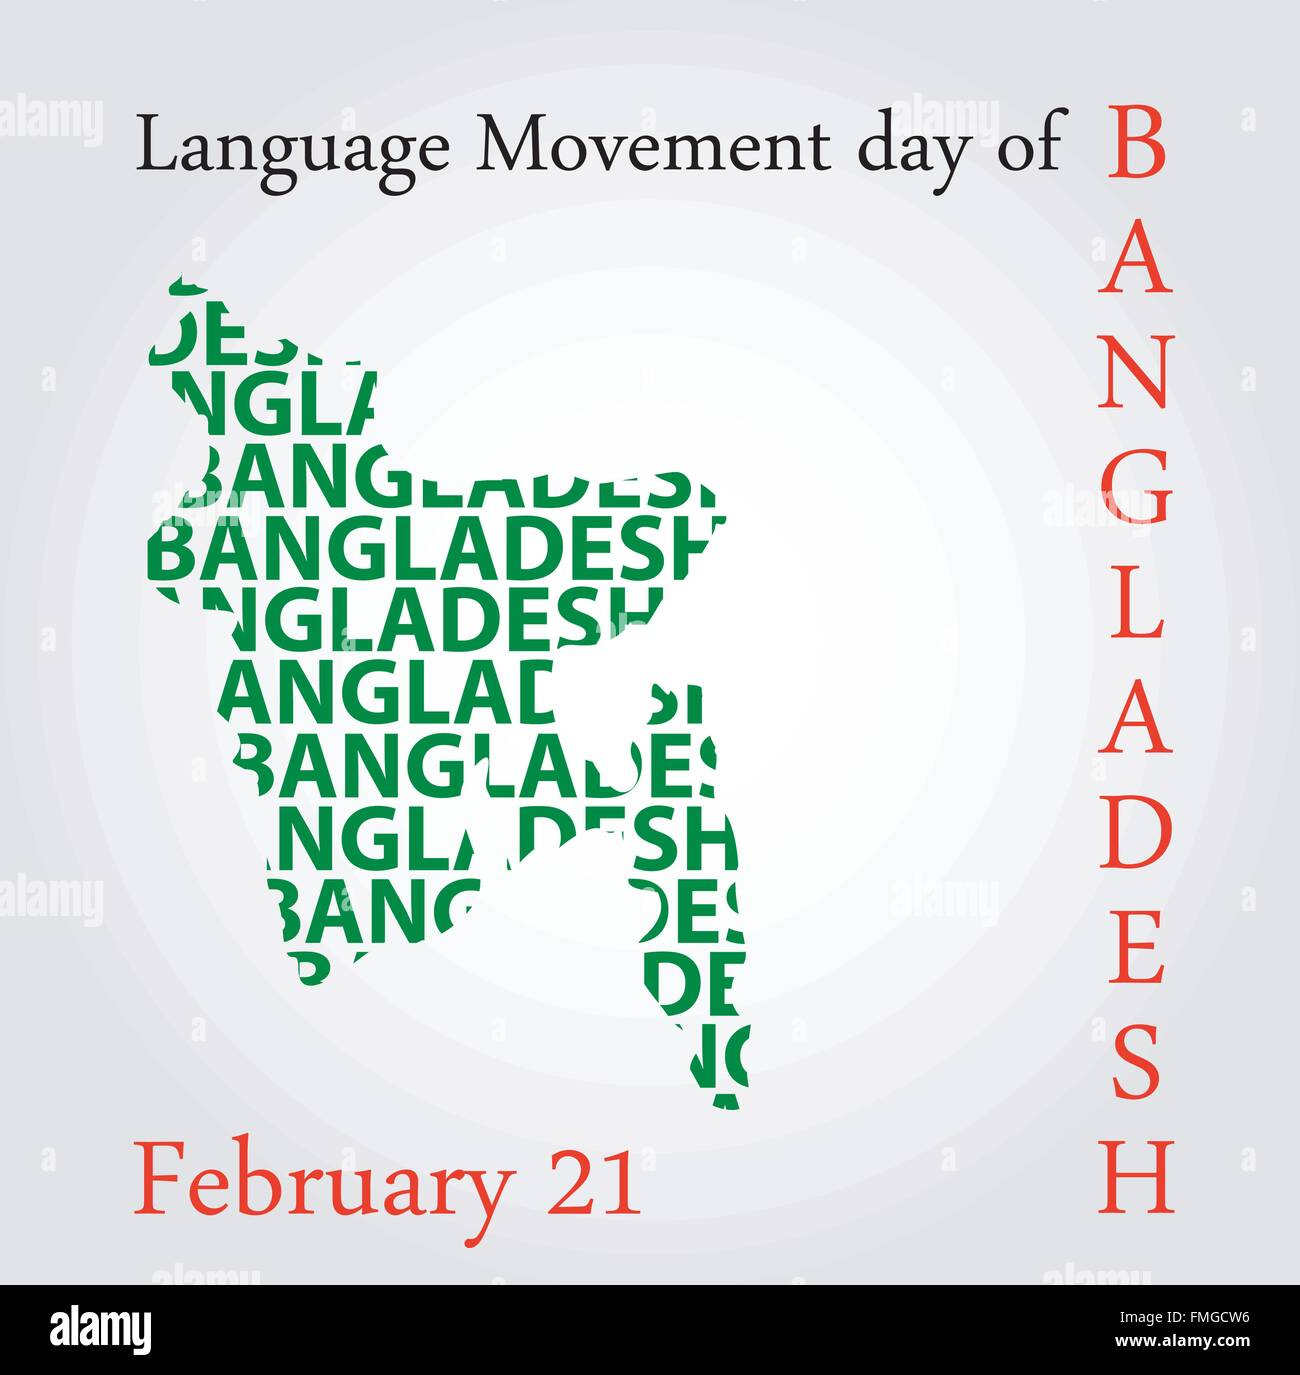 Language Movement day of Bangladesh on February 21 - Stock Image